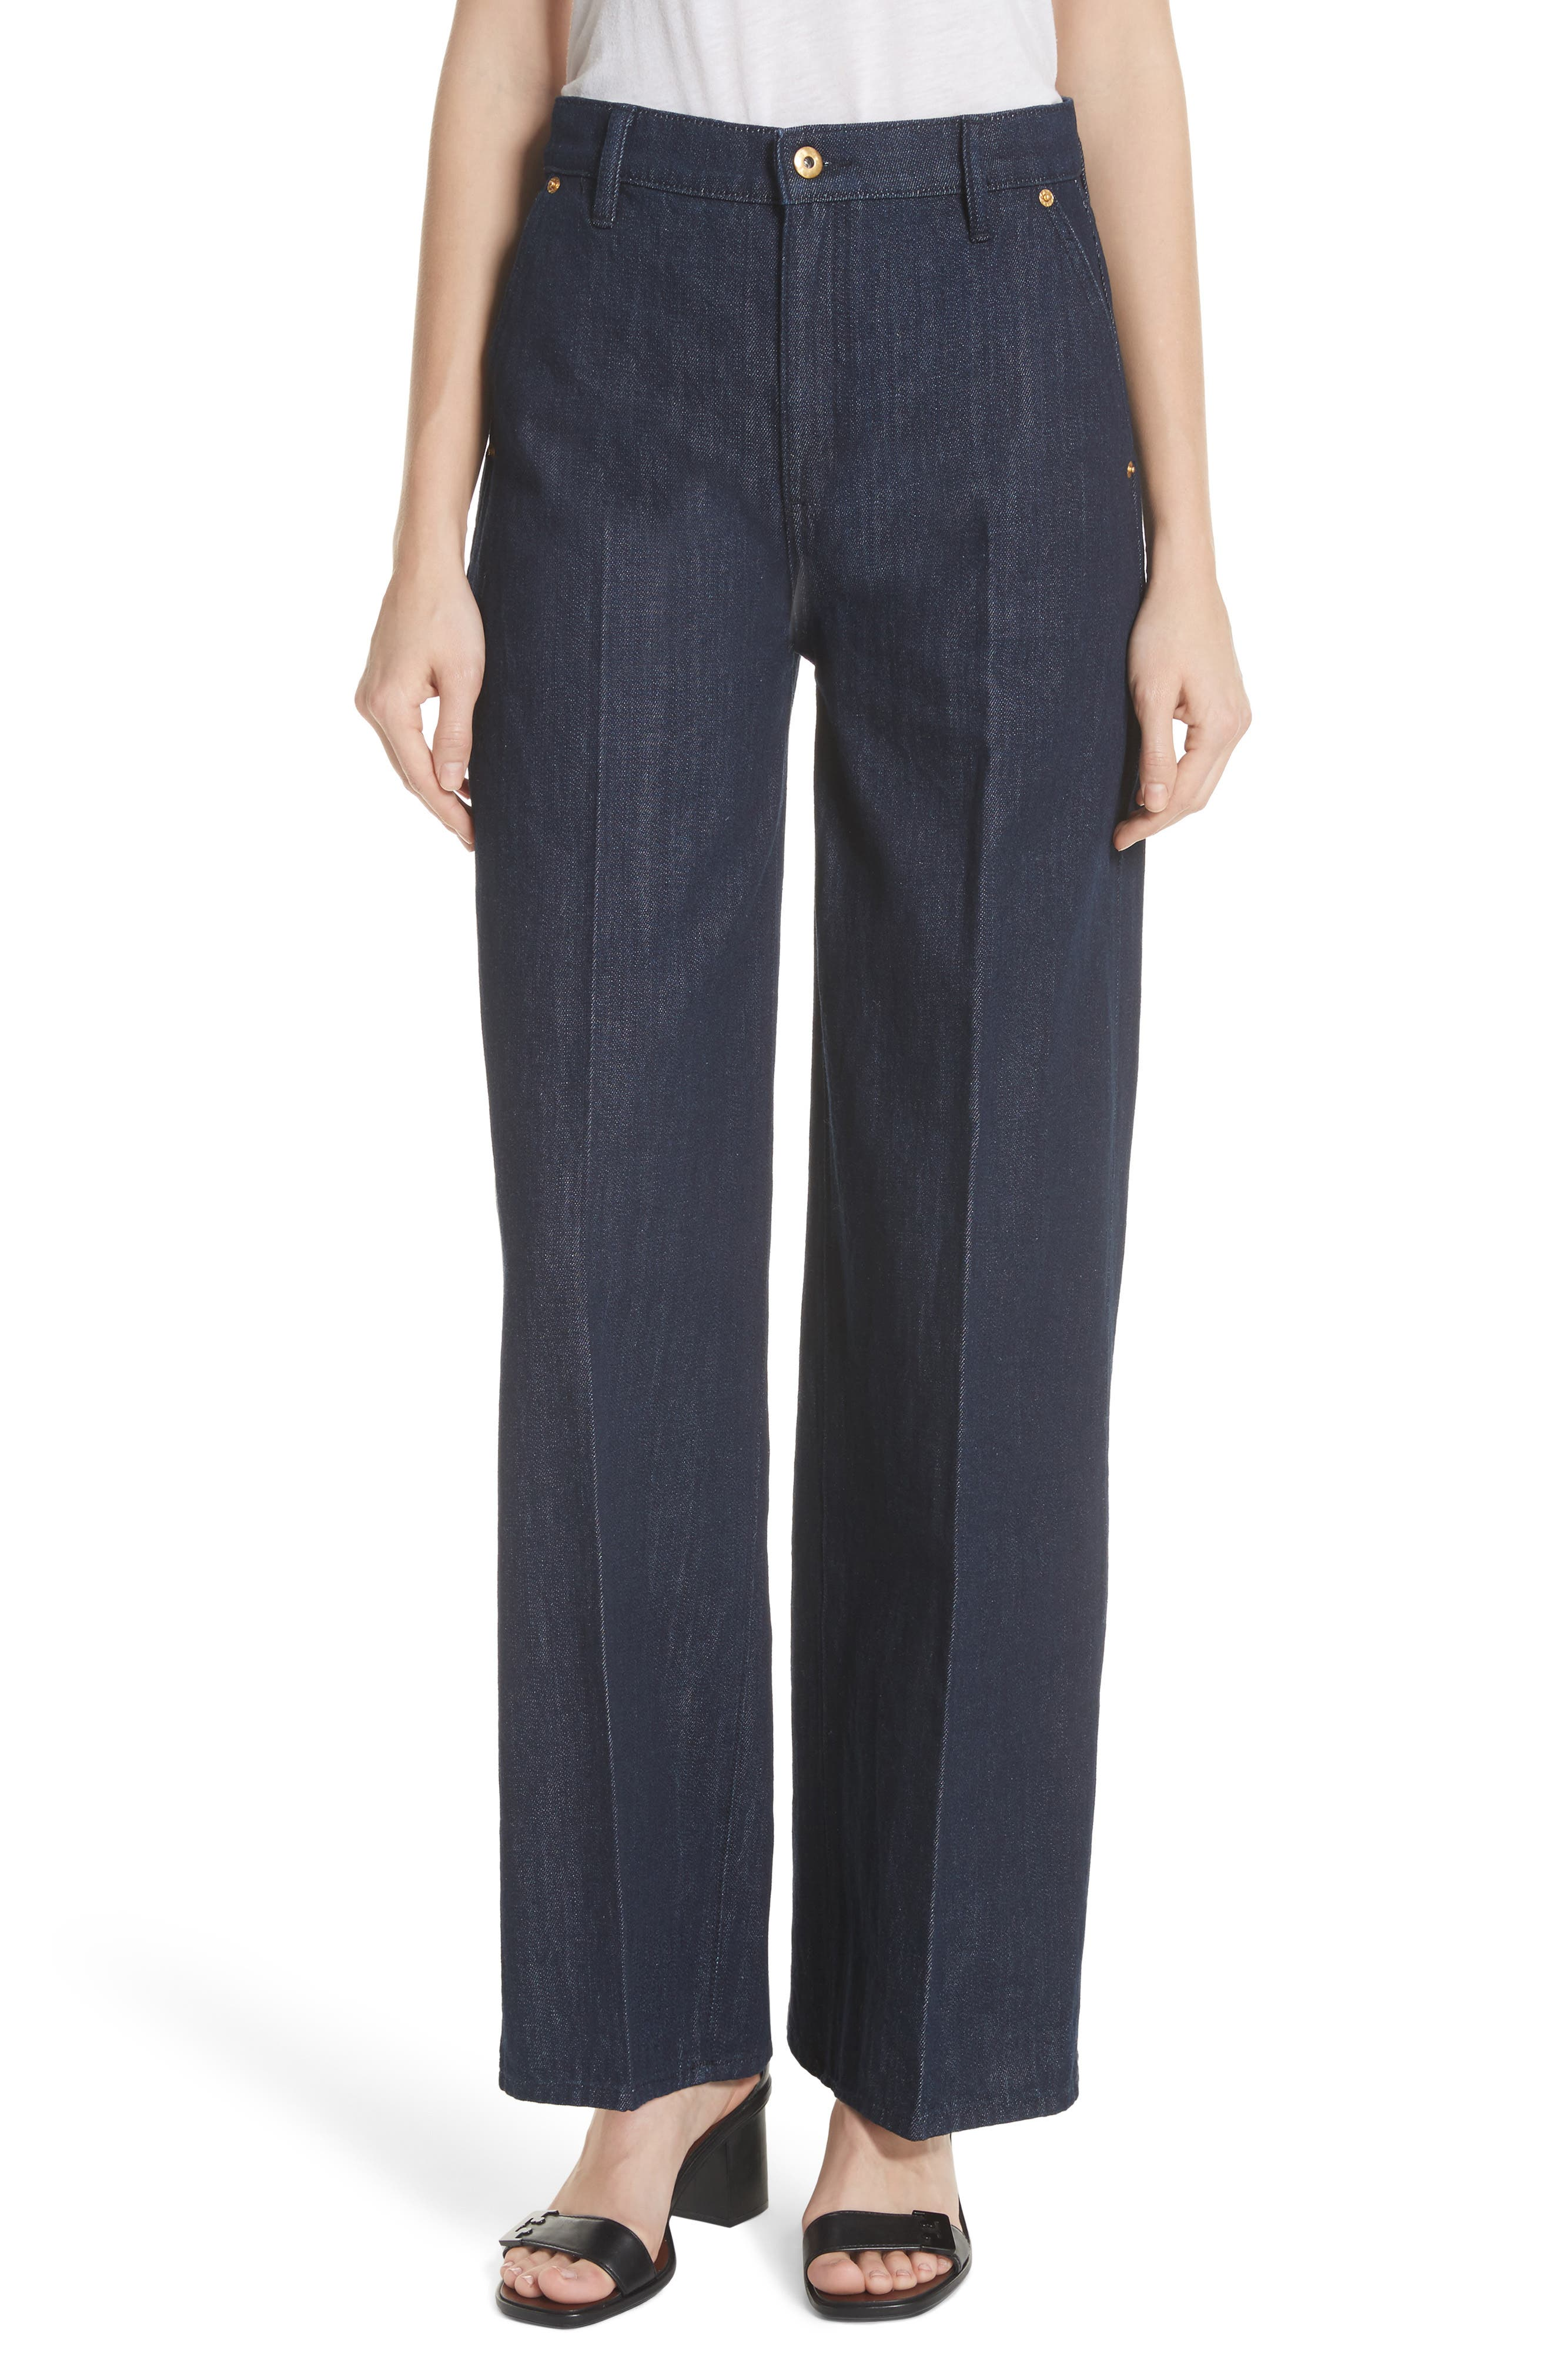 Tory Burch Tilly Jeans